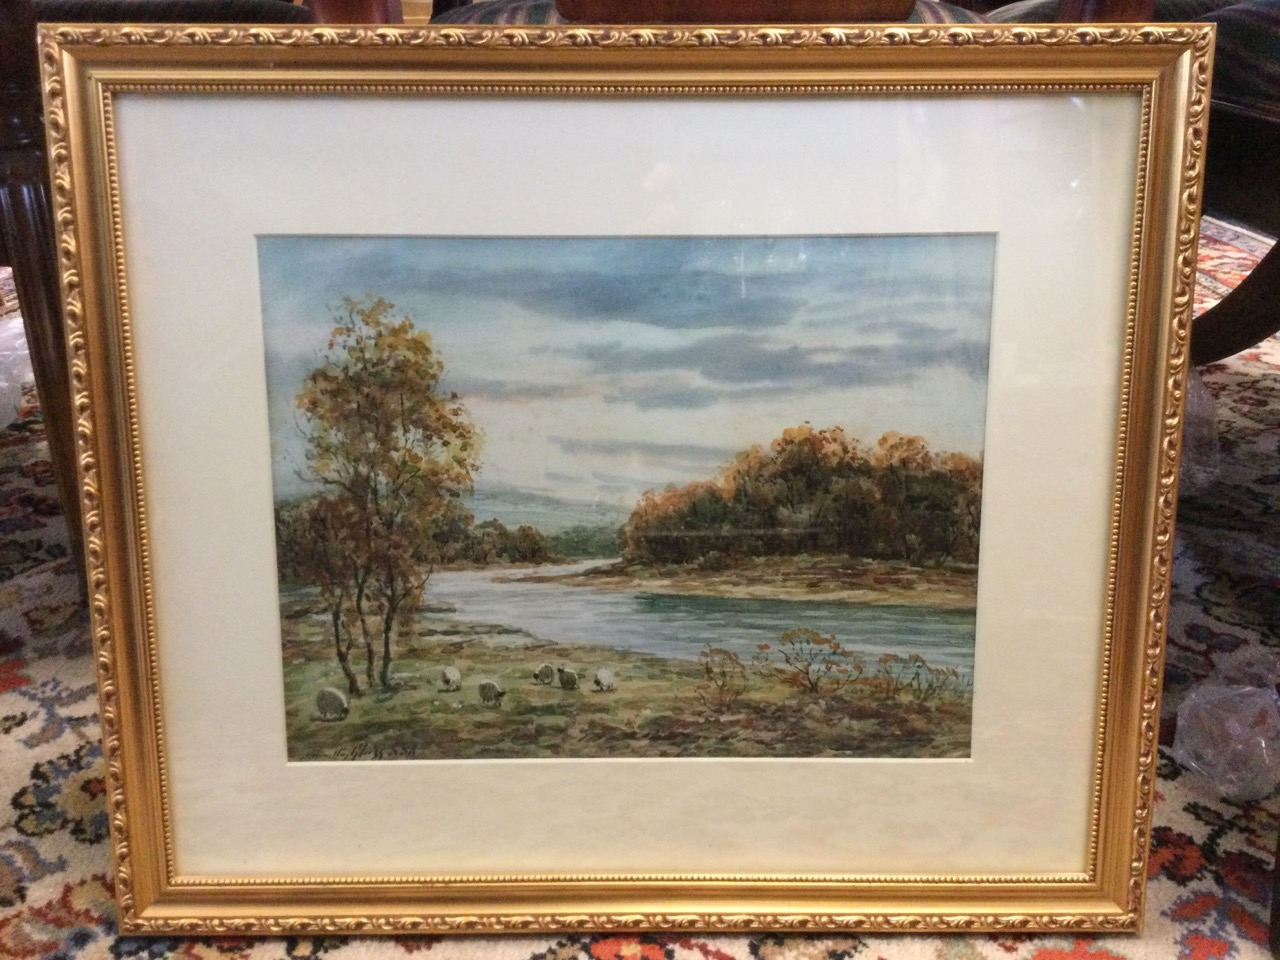 Hamilton Glass, watercolour, river landscape with sheep in foreground, signed, mounted & gilt - Image 2 of 3